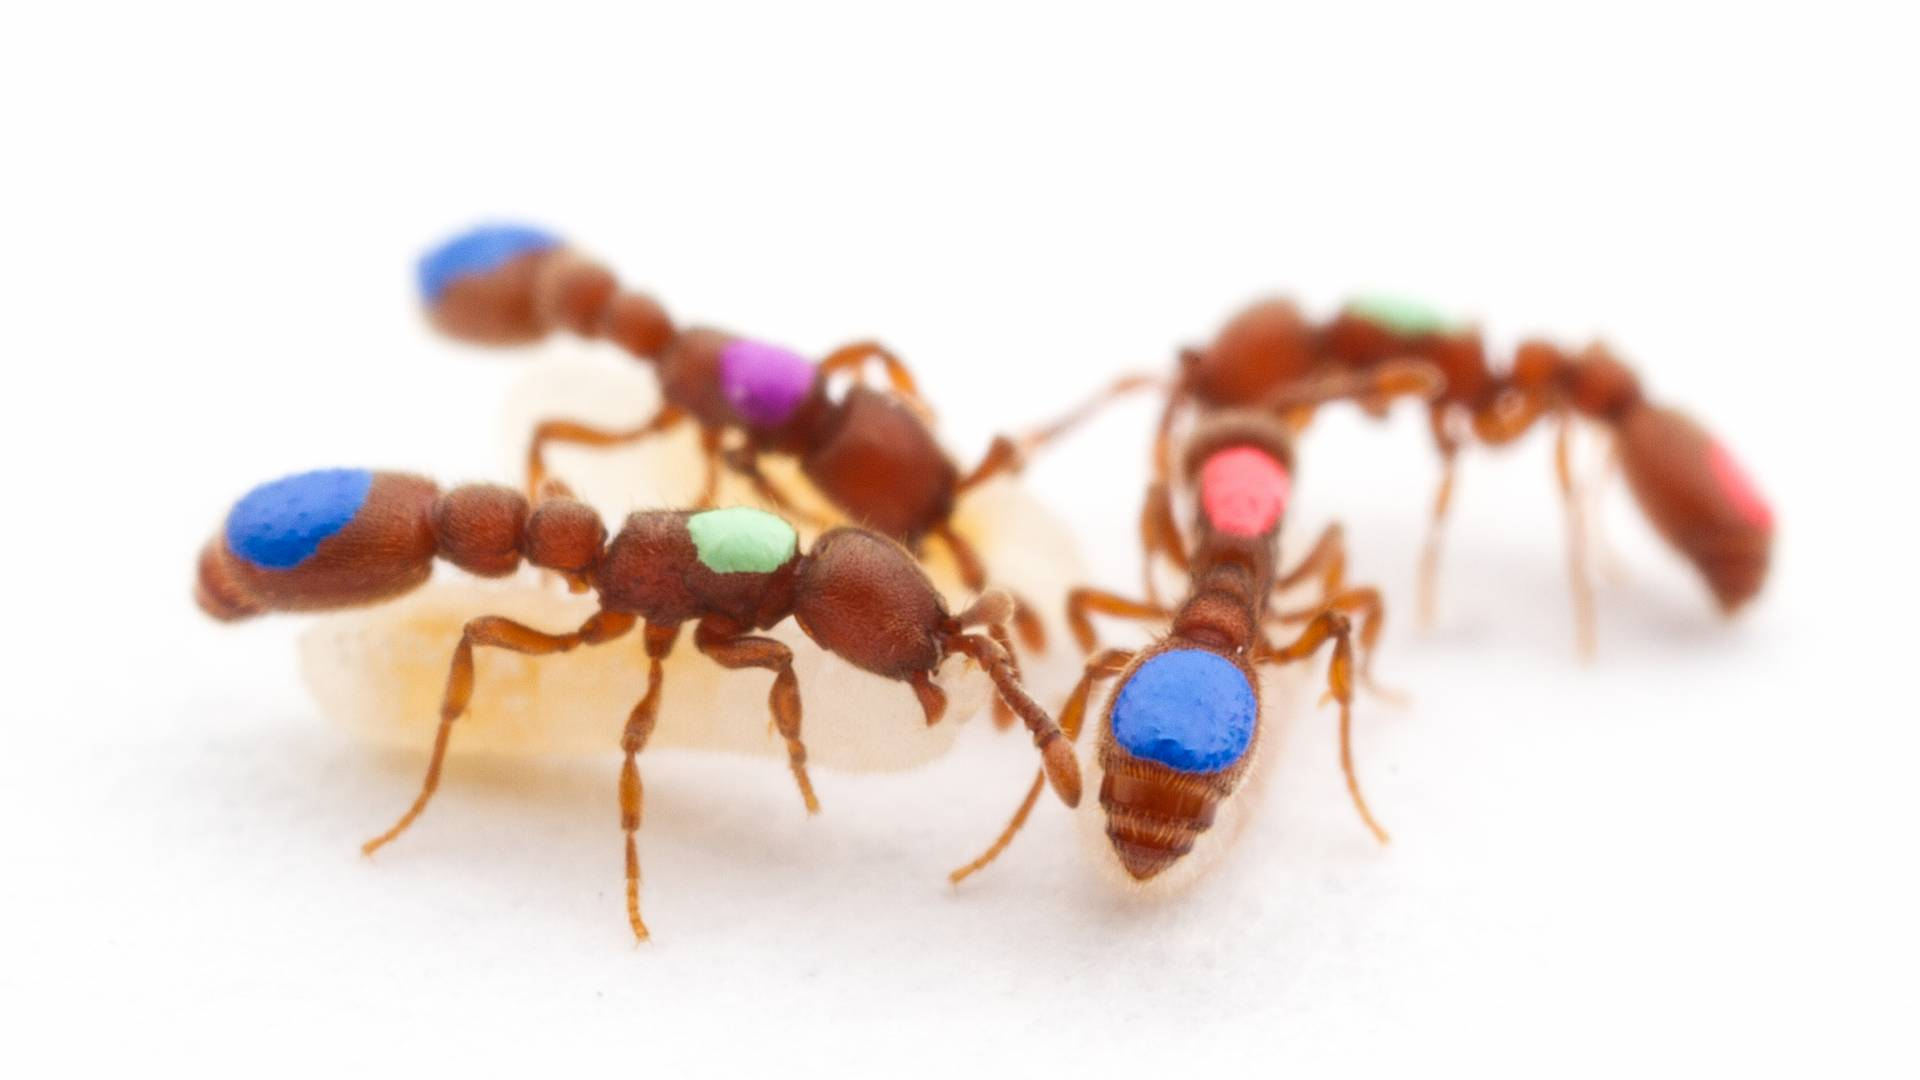 Four ants with colored circles on them gather together